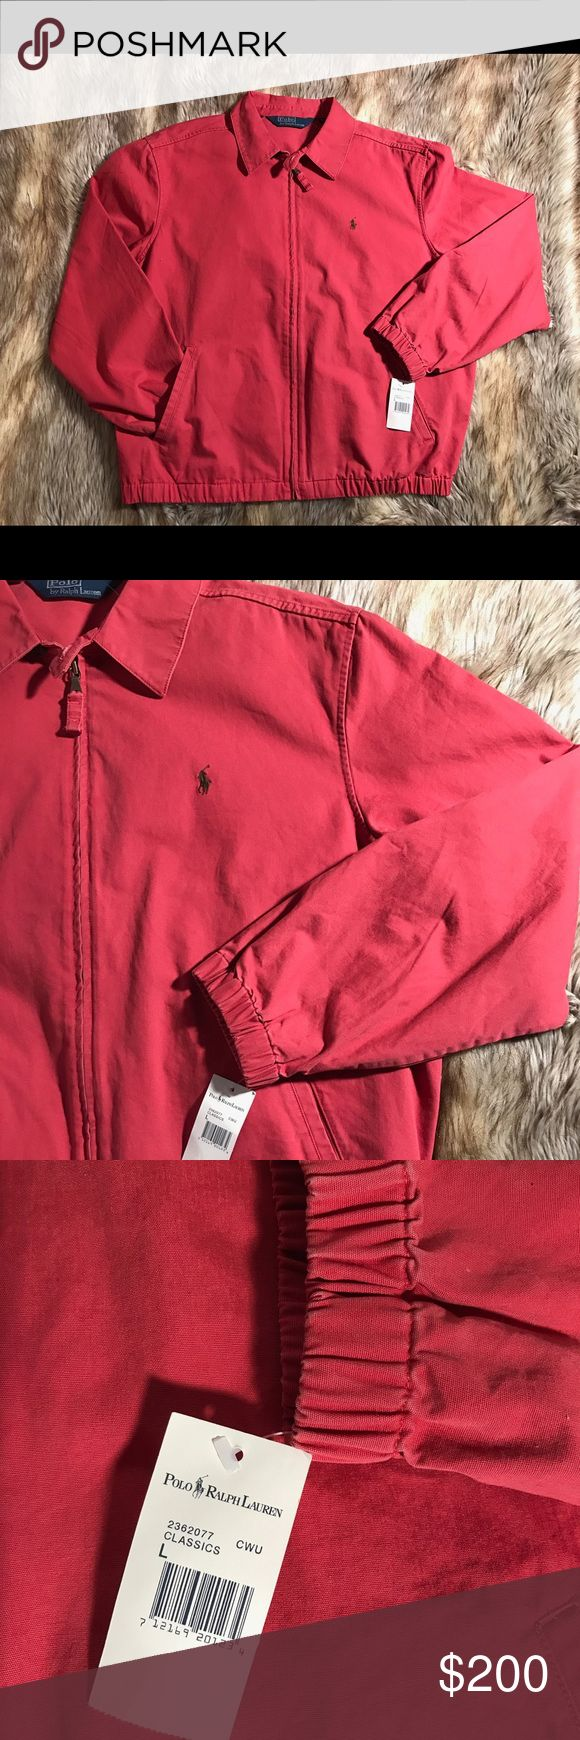 Vintage Ralph Lauren Polo Jacket A vintage Ralph Lauren Polo Men's Jacket brand new with original tags!! Size large in color Salmon pink. Open to reasonable offers :) Polo by Ralph Lauren Jackets & Coats